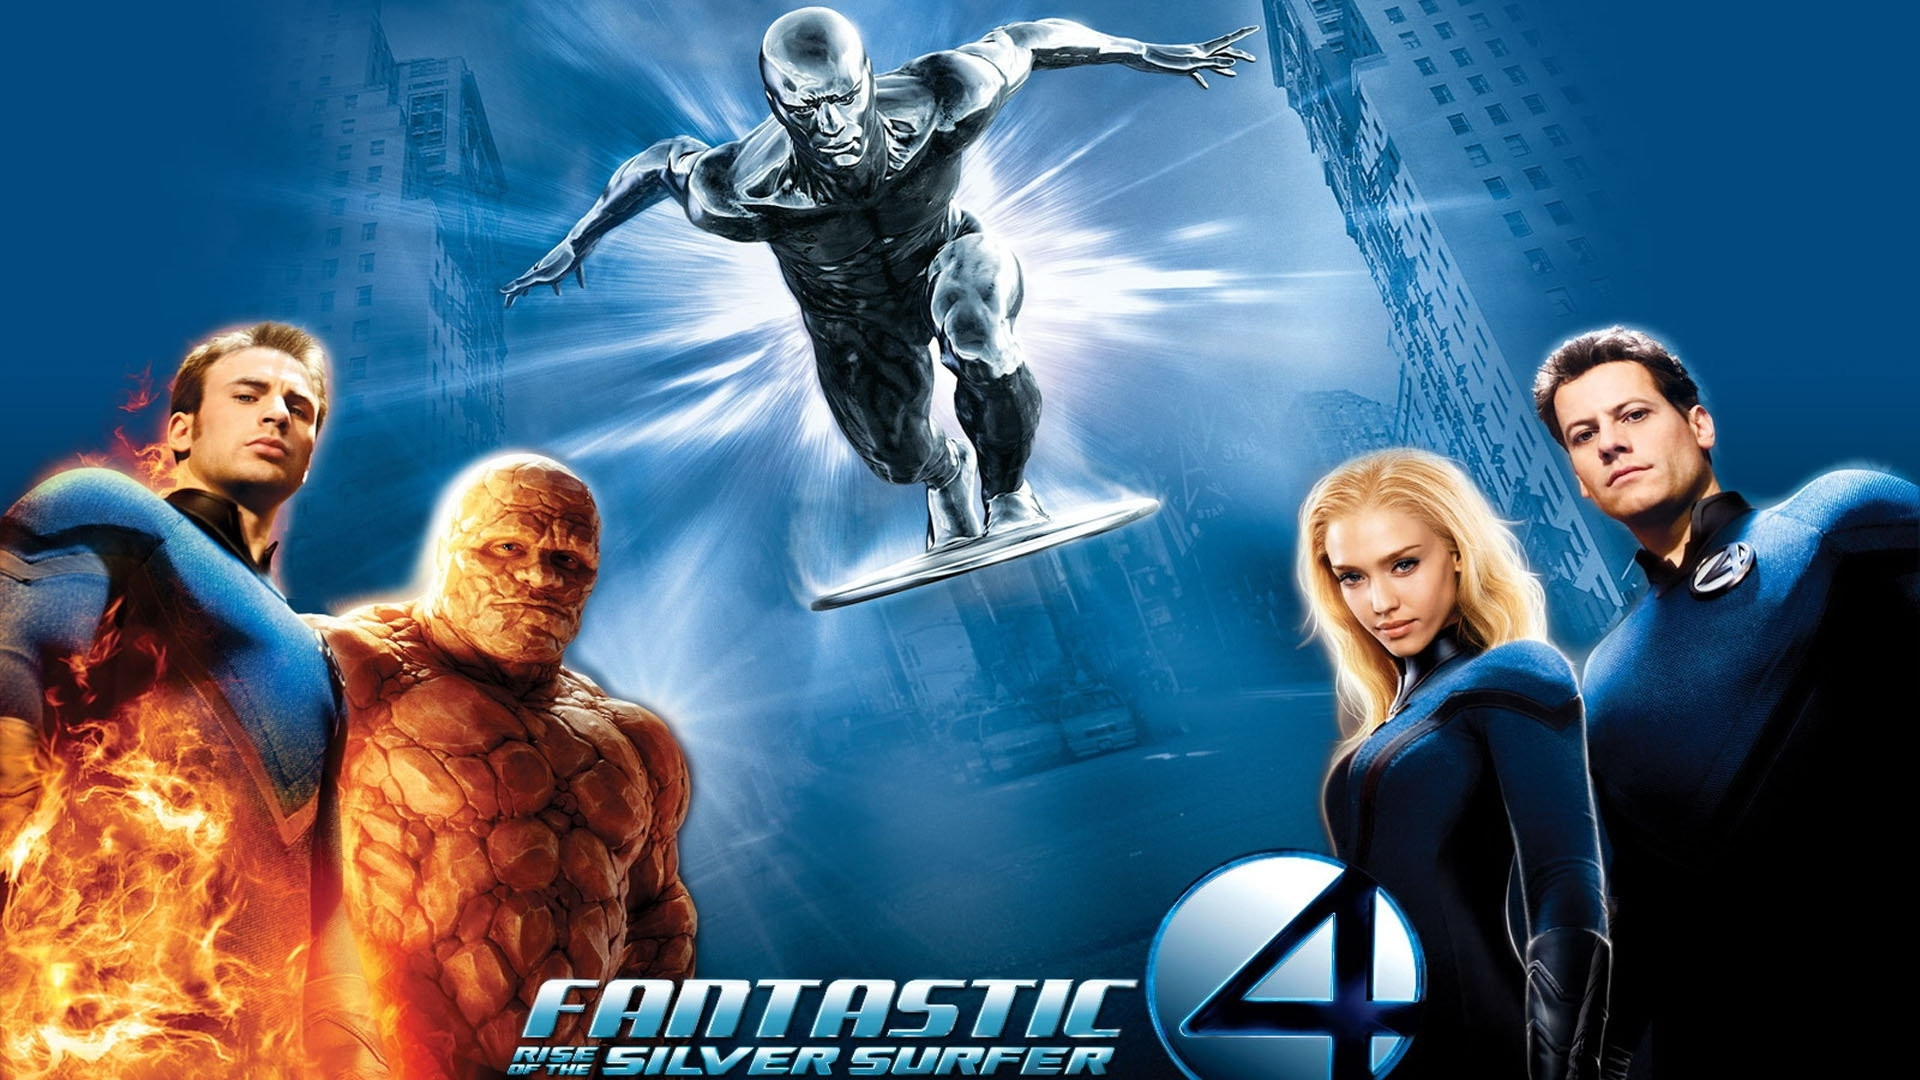 Fantastic 4 Rise Of The Silver Surfer Hd Wallpaper Background